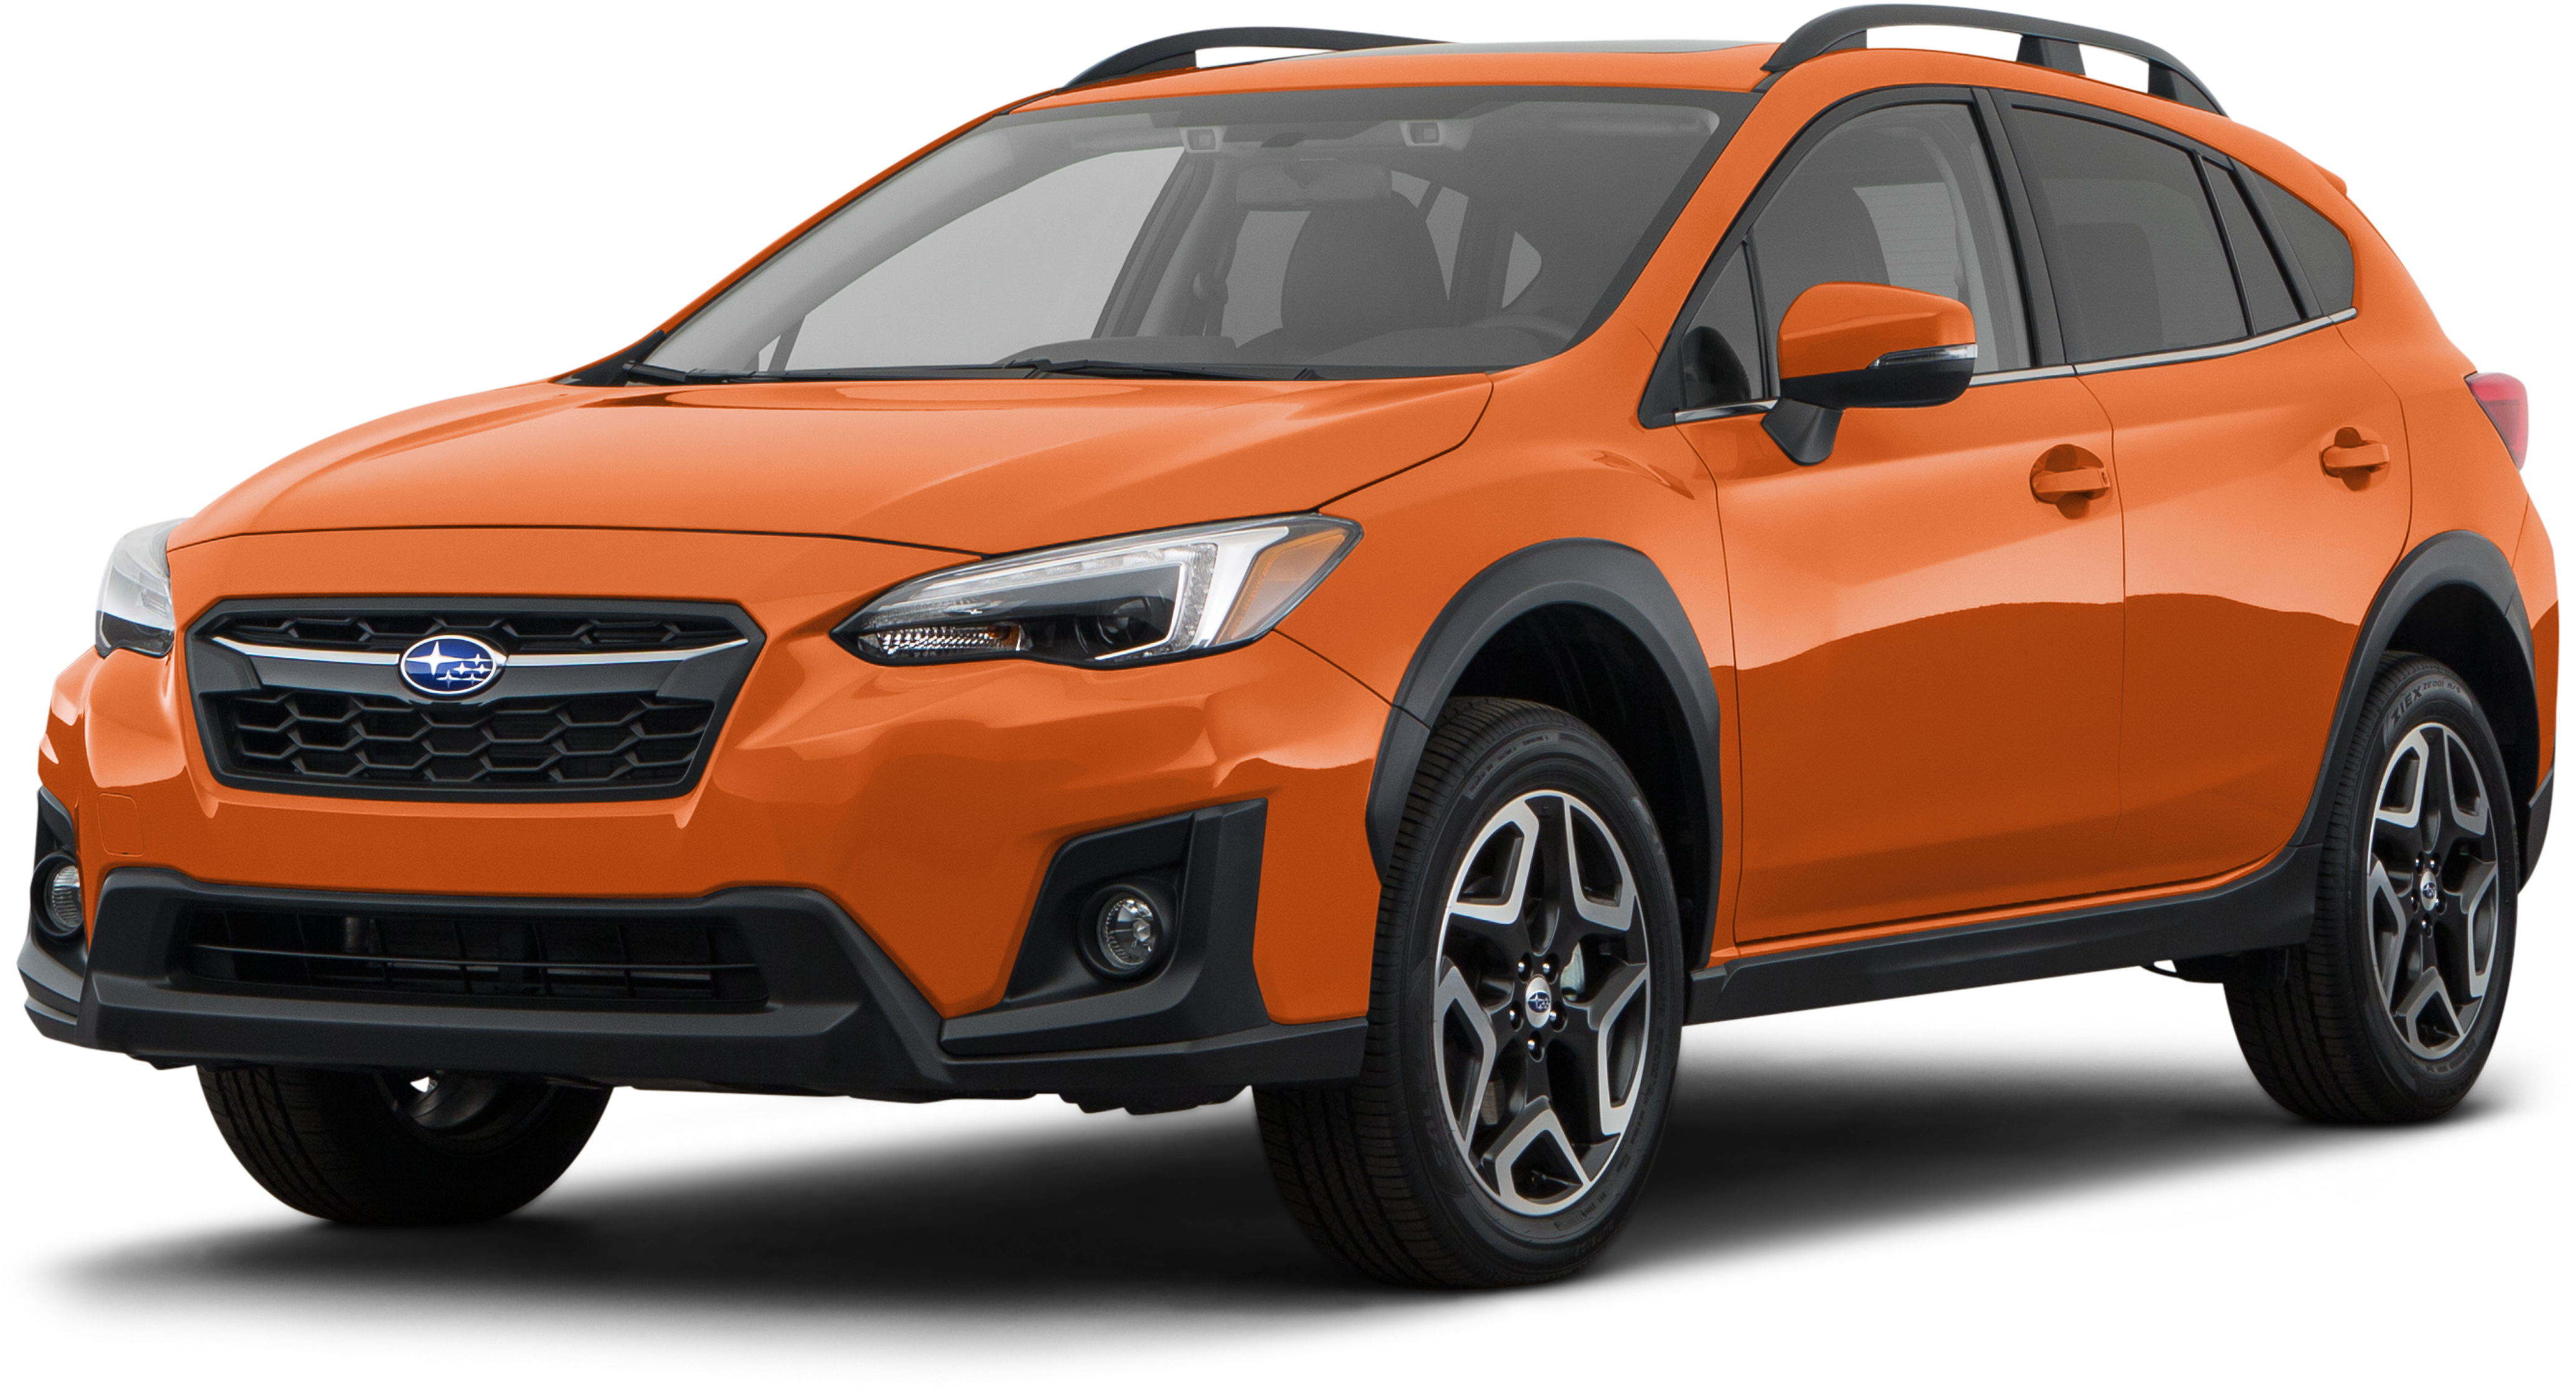 Epa Estimated Highway Fuel Economy For 2018 Subaru Crosstrek Cvt Models Actual Mileage May Vary 2017 Model Year Vehicle S Projected Cost To Own The